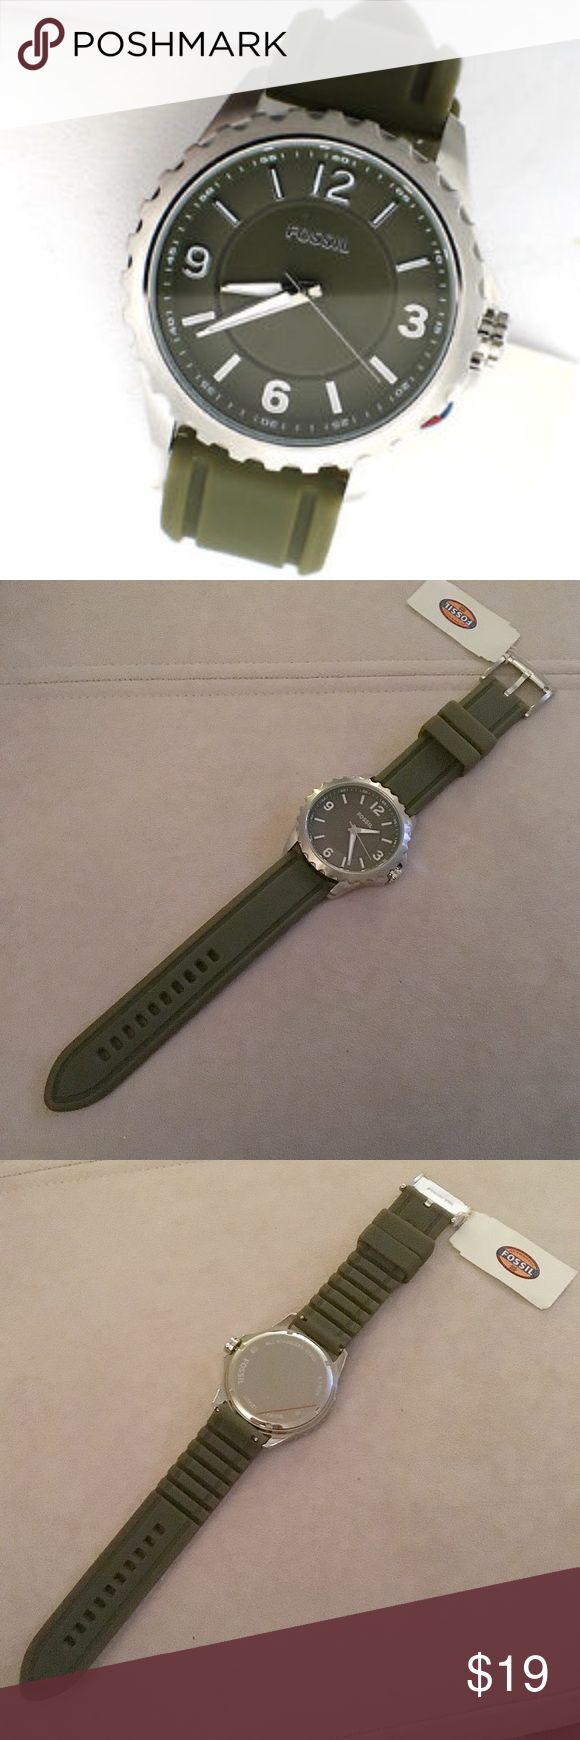 Silicon Fossil Watch NWT 🎉 Men's silicon hunter green Fossil watch with silver hardware. NWT. Never warn and in great condition. The battery is running but the hands in the face are slightly loose and can move faster than the actual time. This can be repaired through Fossil - is covered under the warranty!! Authentic! No trades! Fossil Accessories Watches